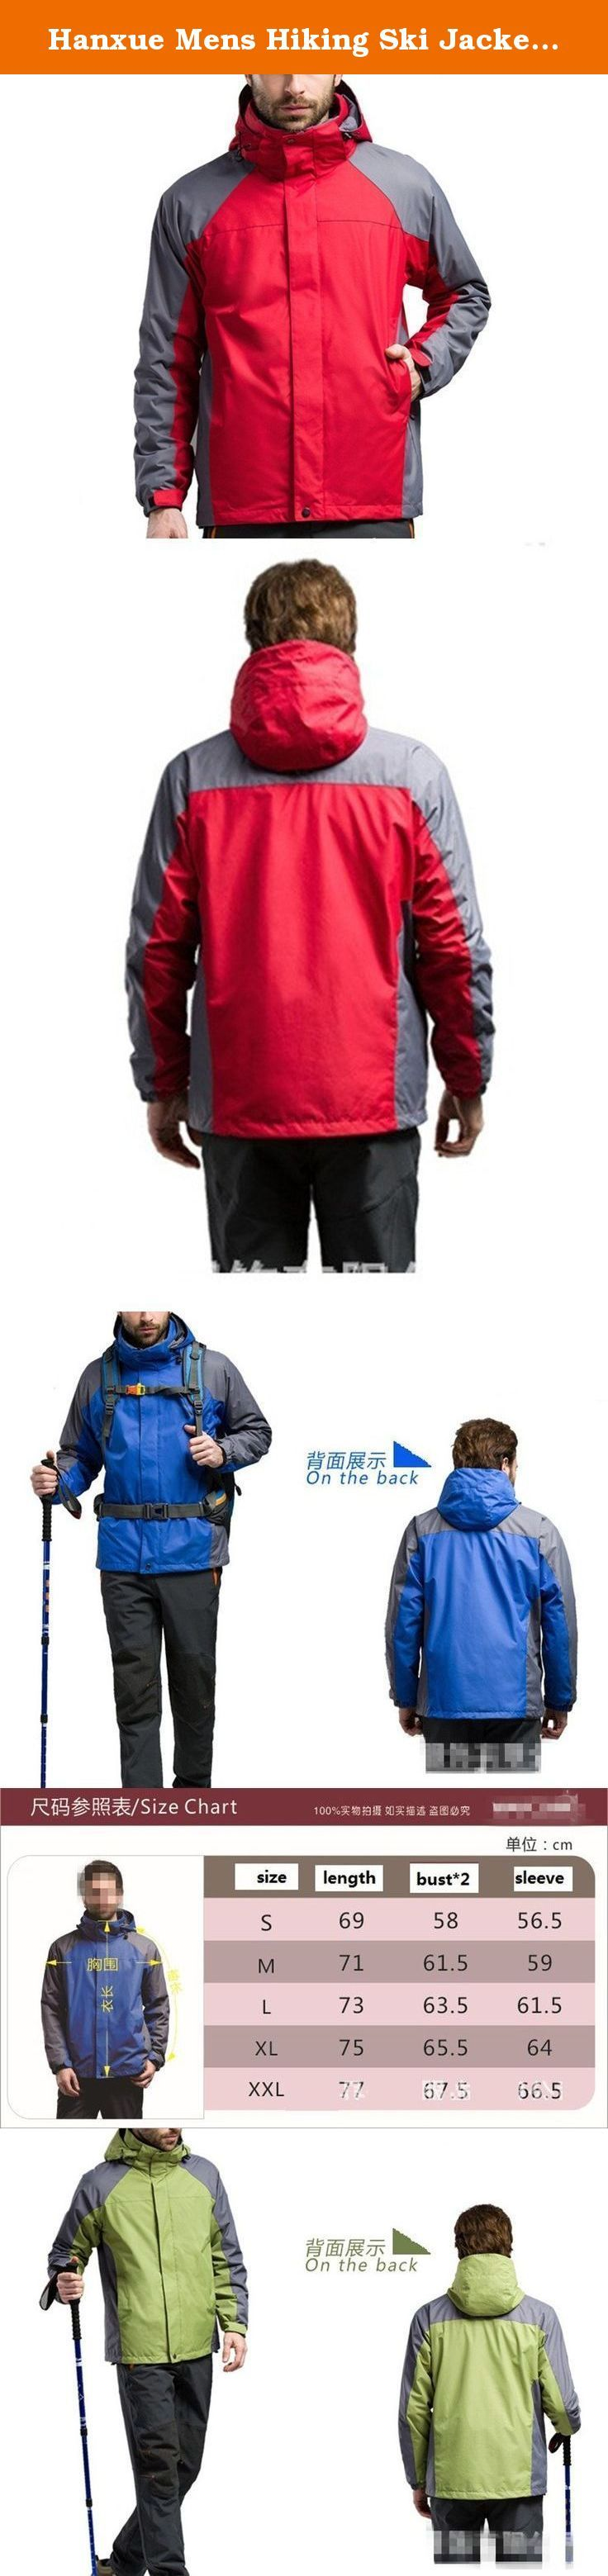 Hanxue Mens Hiking Ski Jacket Softshell 3 in 1 Hiking Raincoat Plus Size Men Waterproof Sportswear with Removable Liner (002 Red, S). A great jacket for hiking¡¢skii or other outside sports With various pockets and an removeable liner, this jacket is as useful as it is stylish. Water-resistant, windproof and lightly insulated with a fleece lining, it's designed to keep you warm and dry from the rain snow making this a great outdoor jacket for Outdoor enthusiasts.